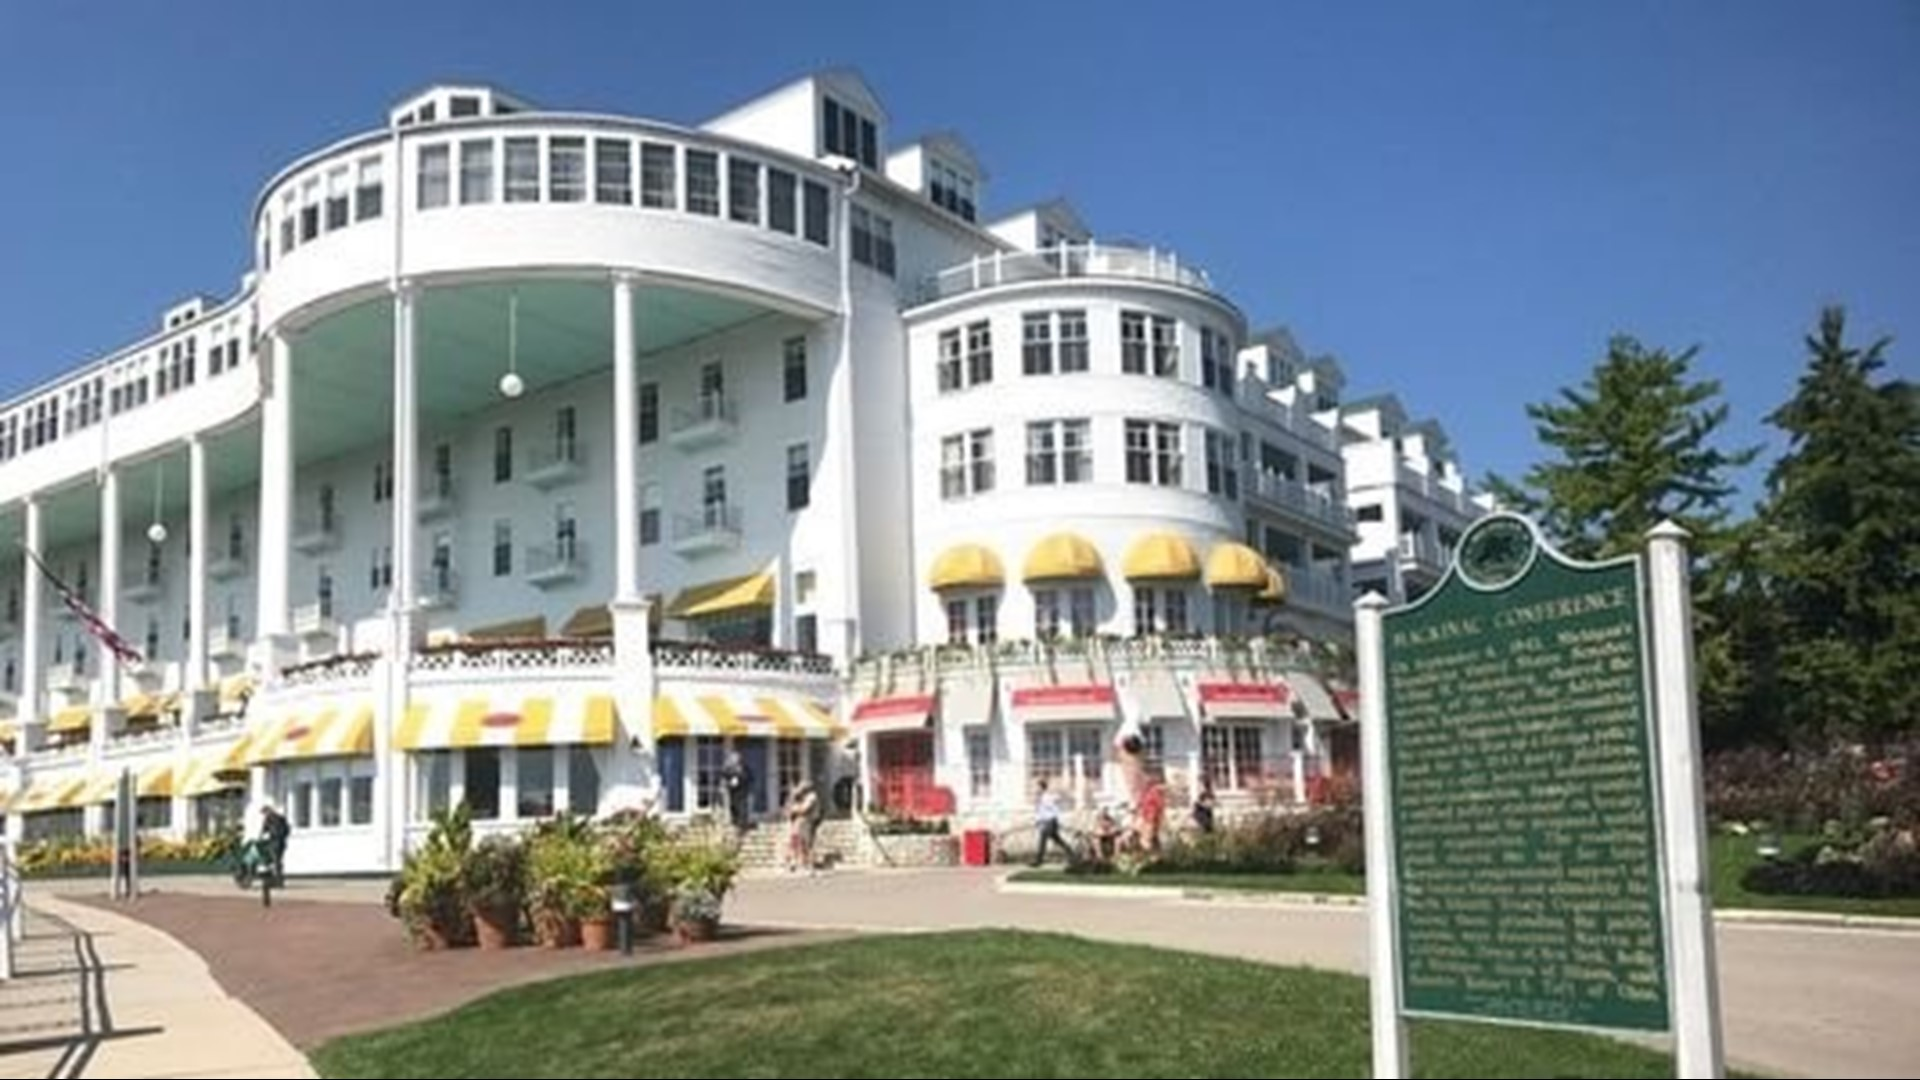 Grand Hotel On Mackinac Island Sold To Private Equity Firm Wkyc Com